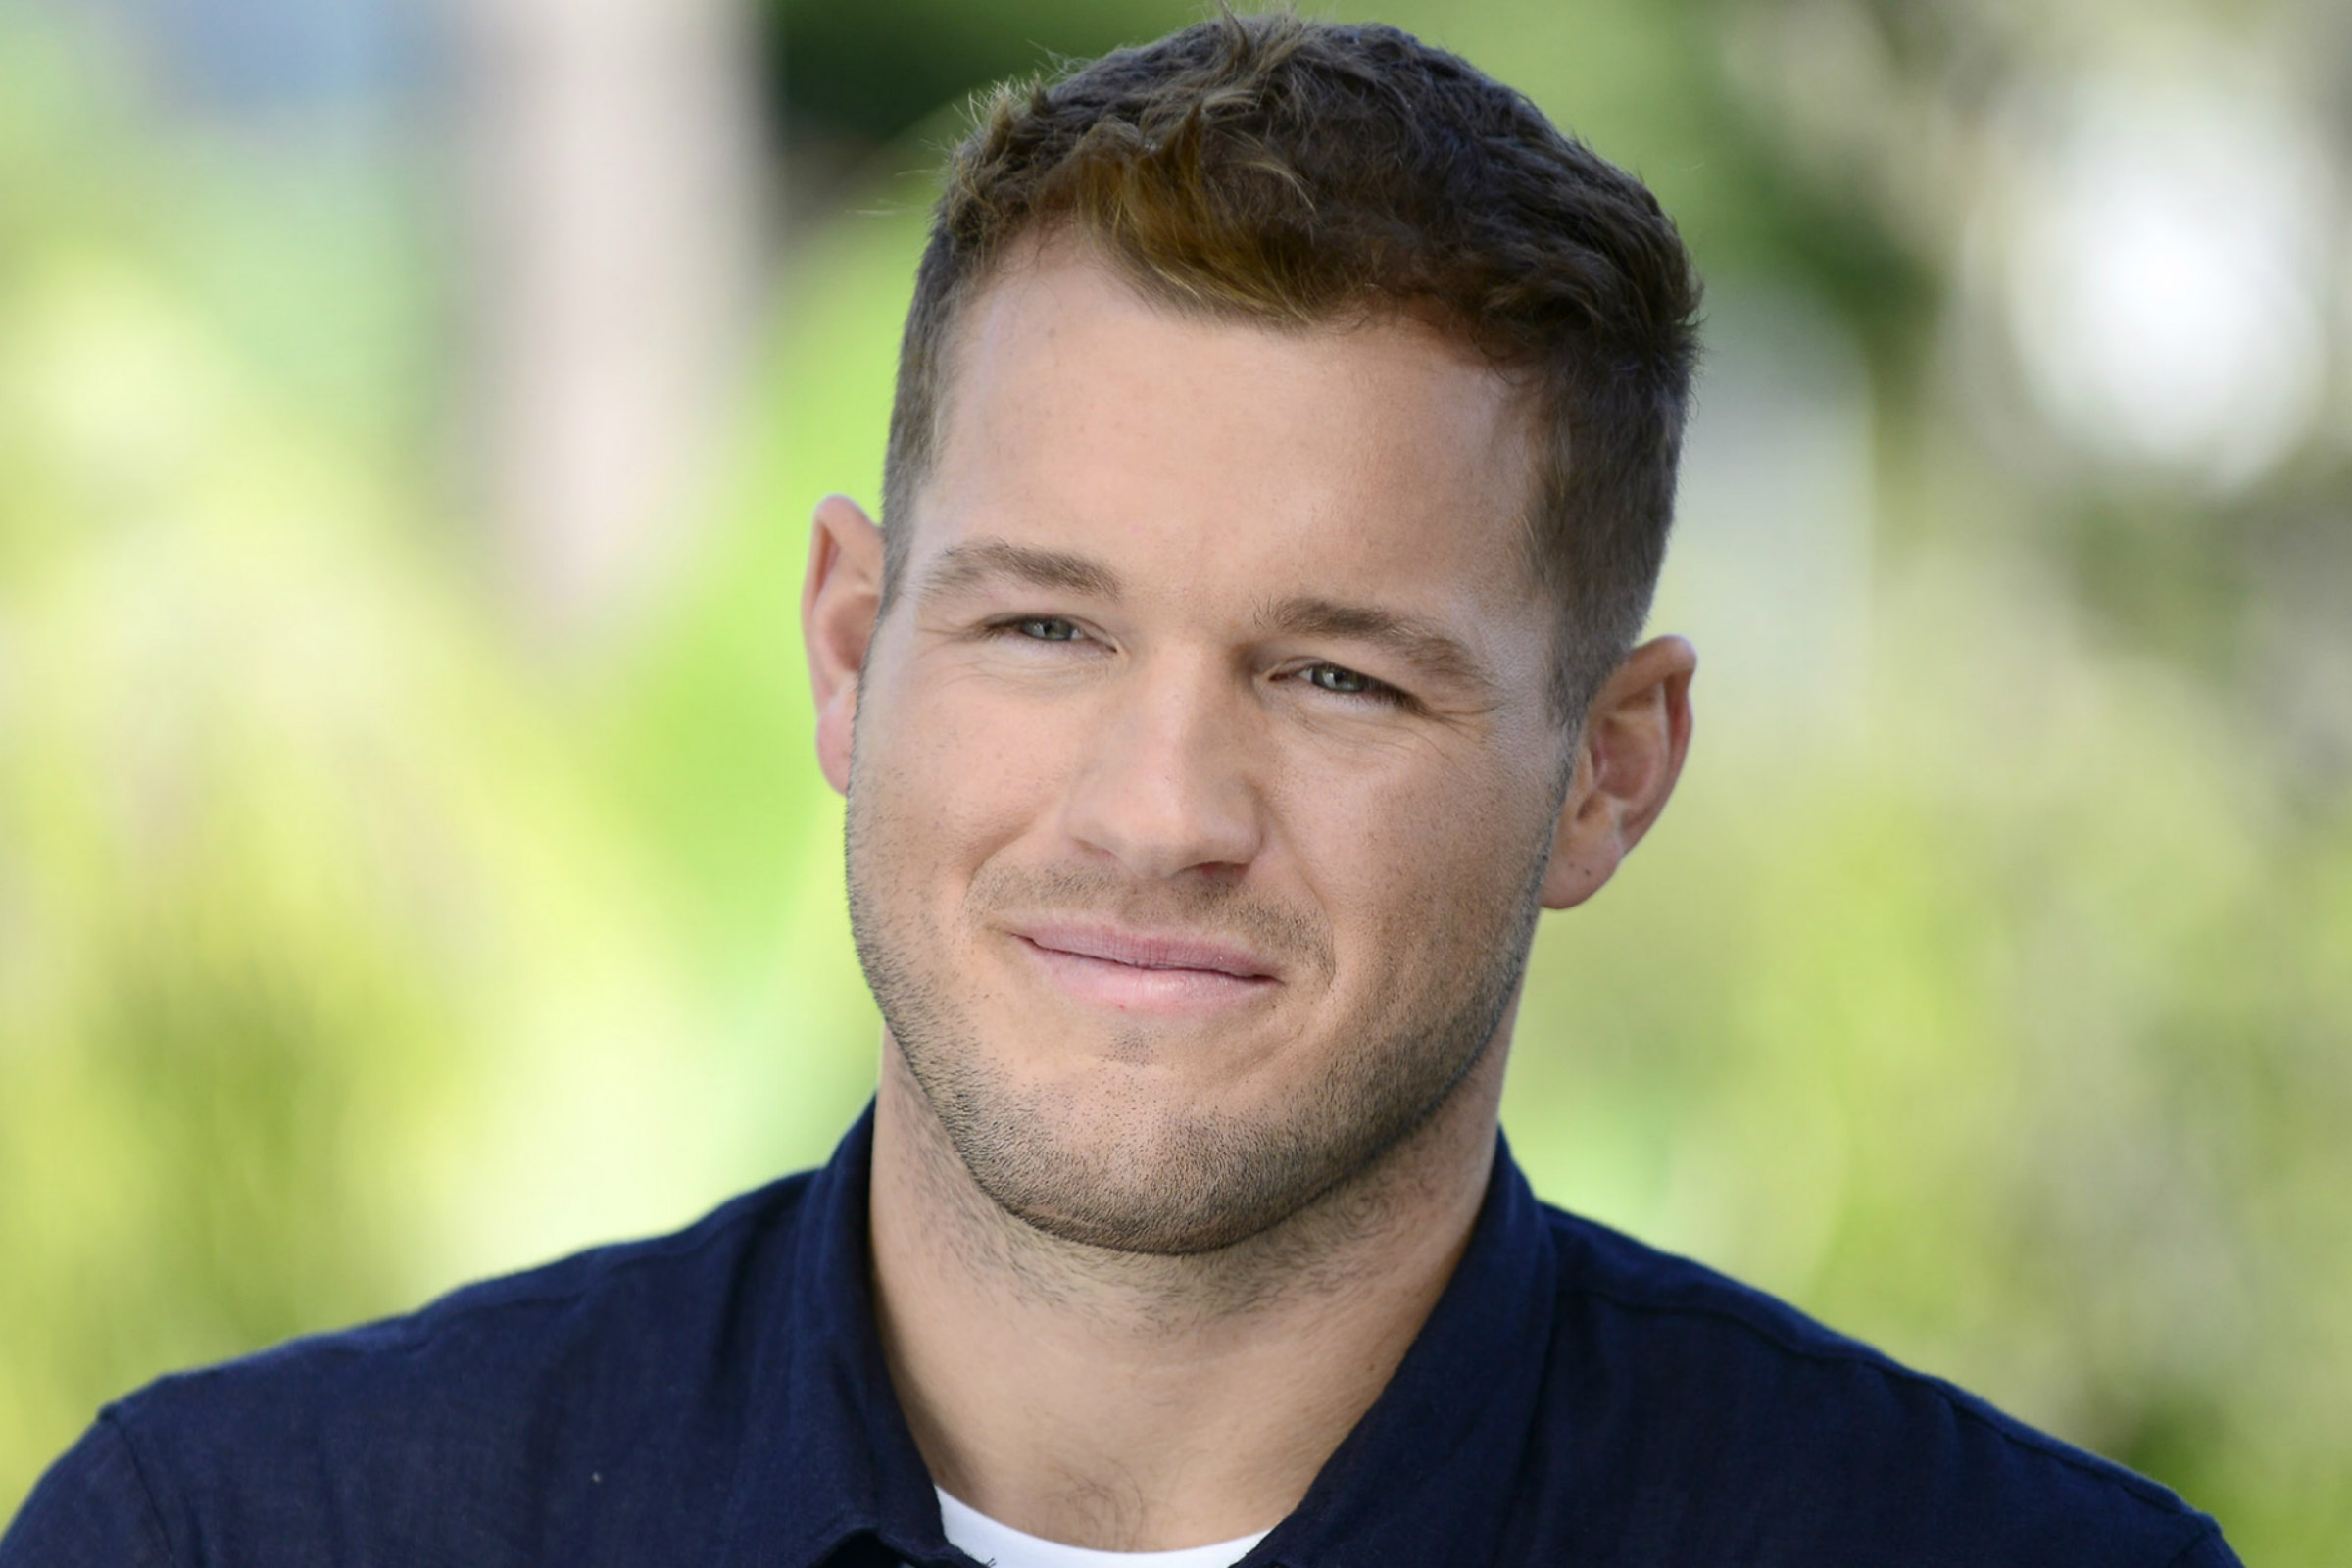 Colton Underwood, a young white man with short brown hair, smiles during an interview